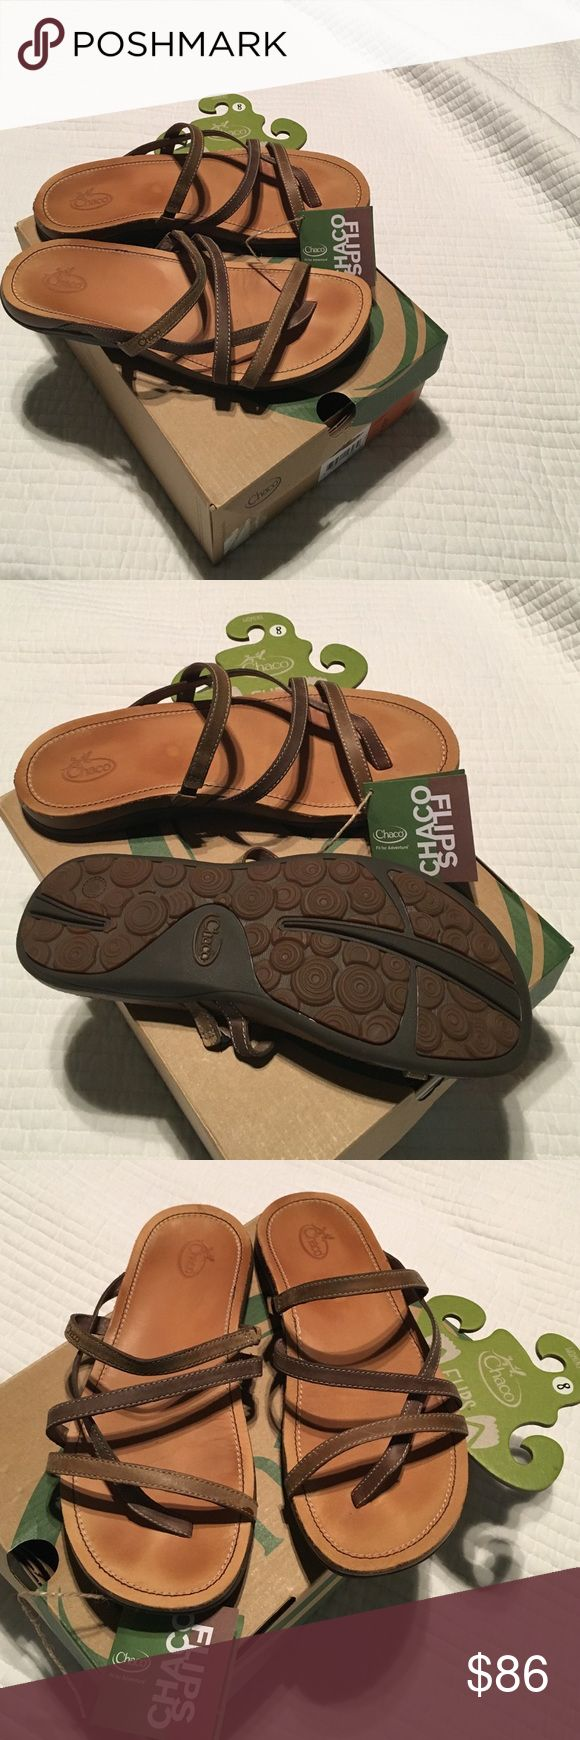 Women's Chaco Brown Leather Cordova Sandals Excellent condition, only worn maybe three times if that. You can tell from picture. Just bought in July 2016. They just don't work for me ,  I needed a bigger size. I have the box as pictured.  All Leather straps, ultra soft pigskin lining across nubuck leather footbeds. Brown in color, women's,  % authentic Chacos Shoes Sandals